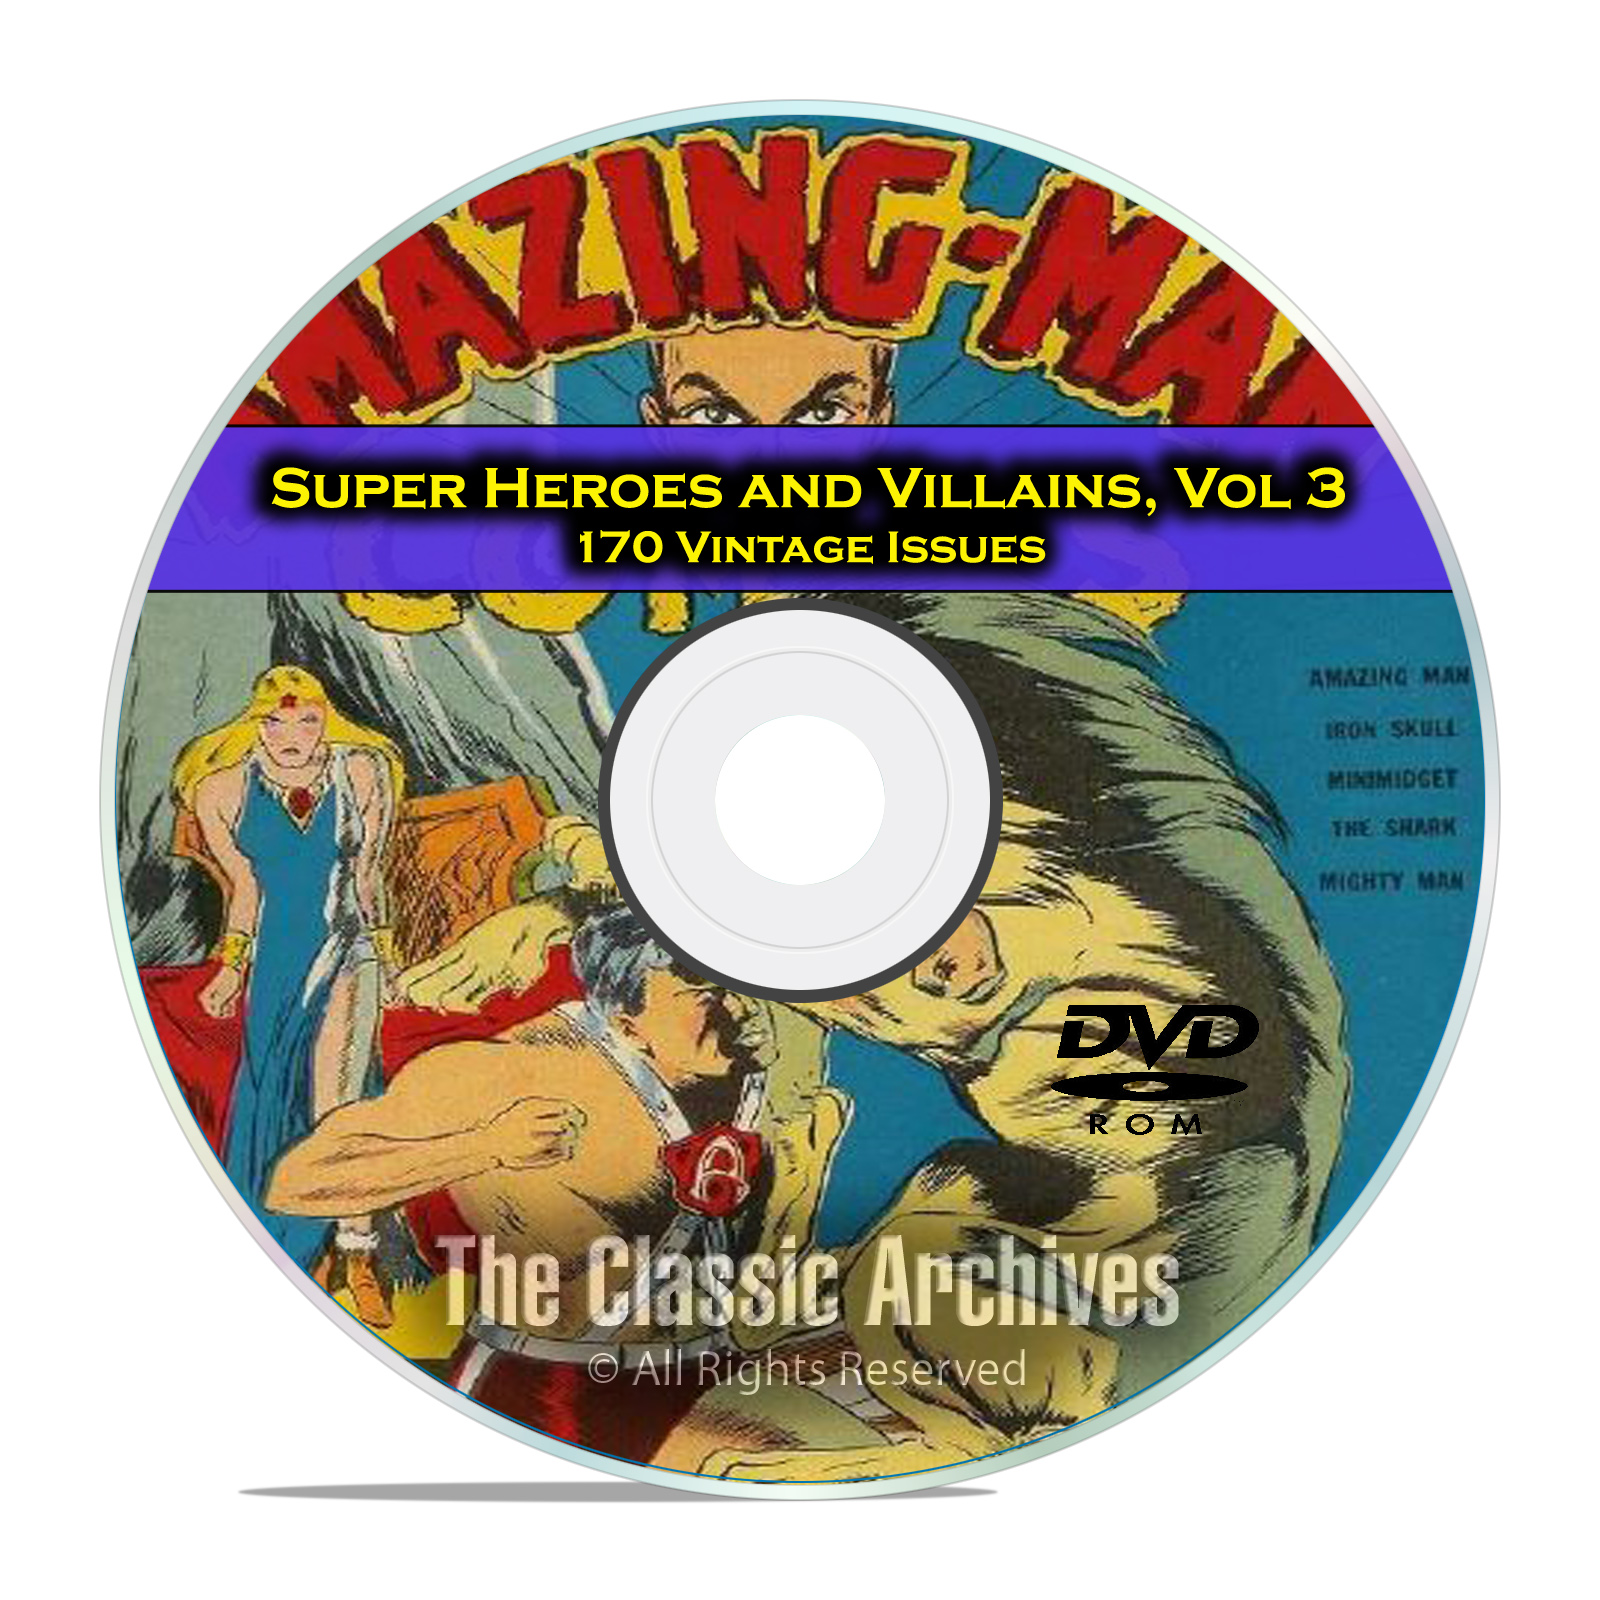 Super Hero Villains, Vol 3, The Blue Beetle Bulletman Golden Age Comics DVD